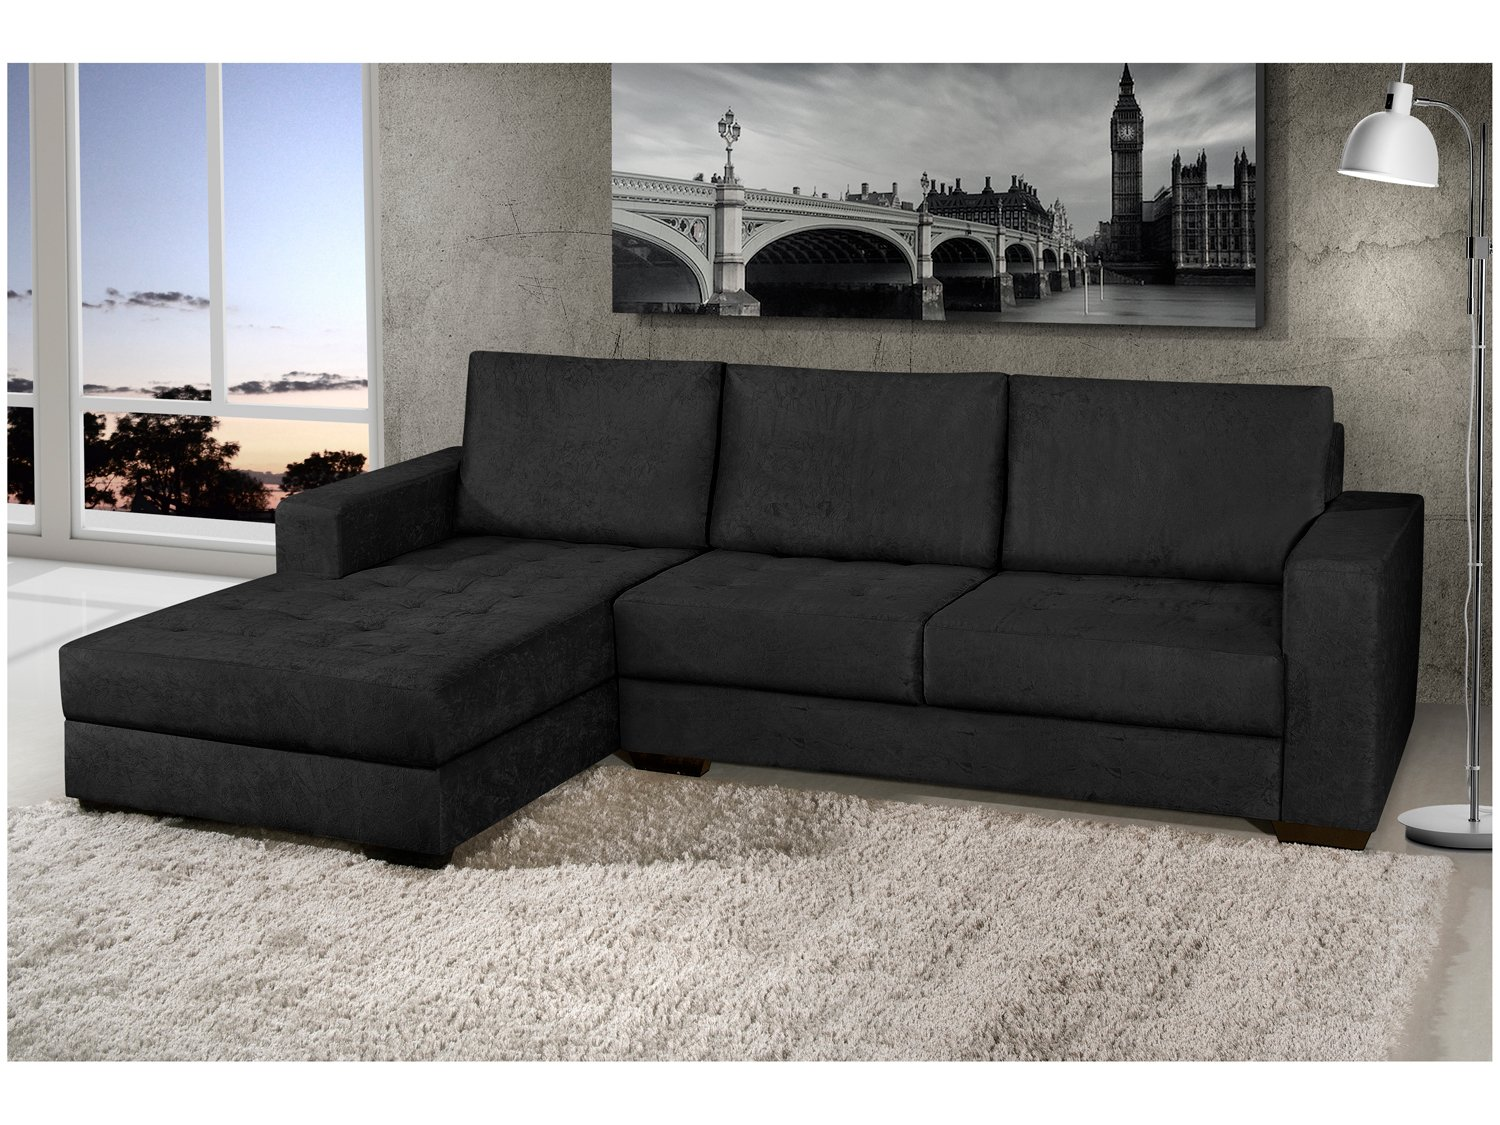 Sof chaise 2 lugares n pole american comfort sof s for Sofa 03 lugares com chaise